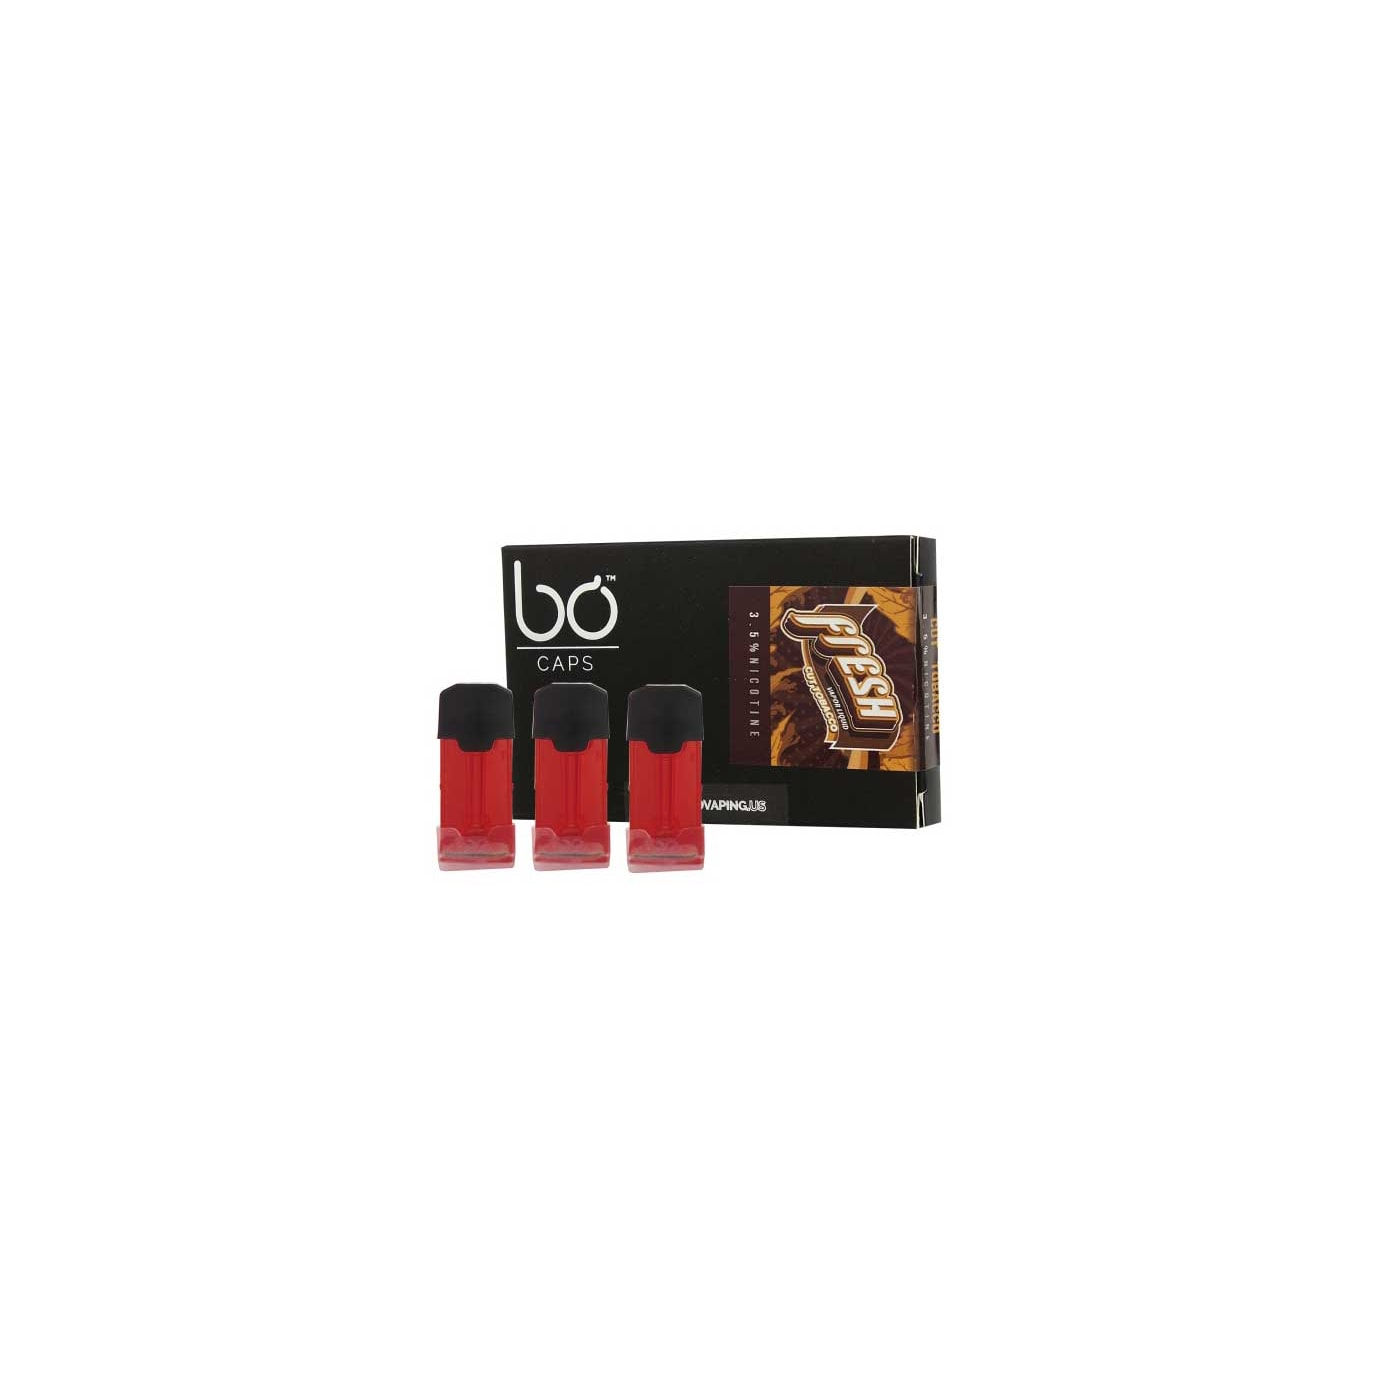 Bo Vaping Cap Tobacco - 3 Pack